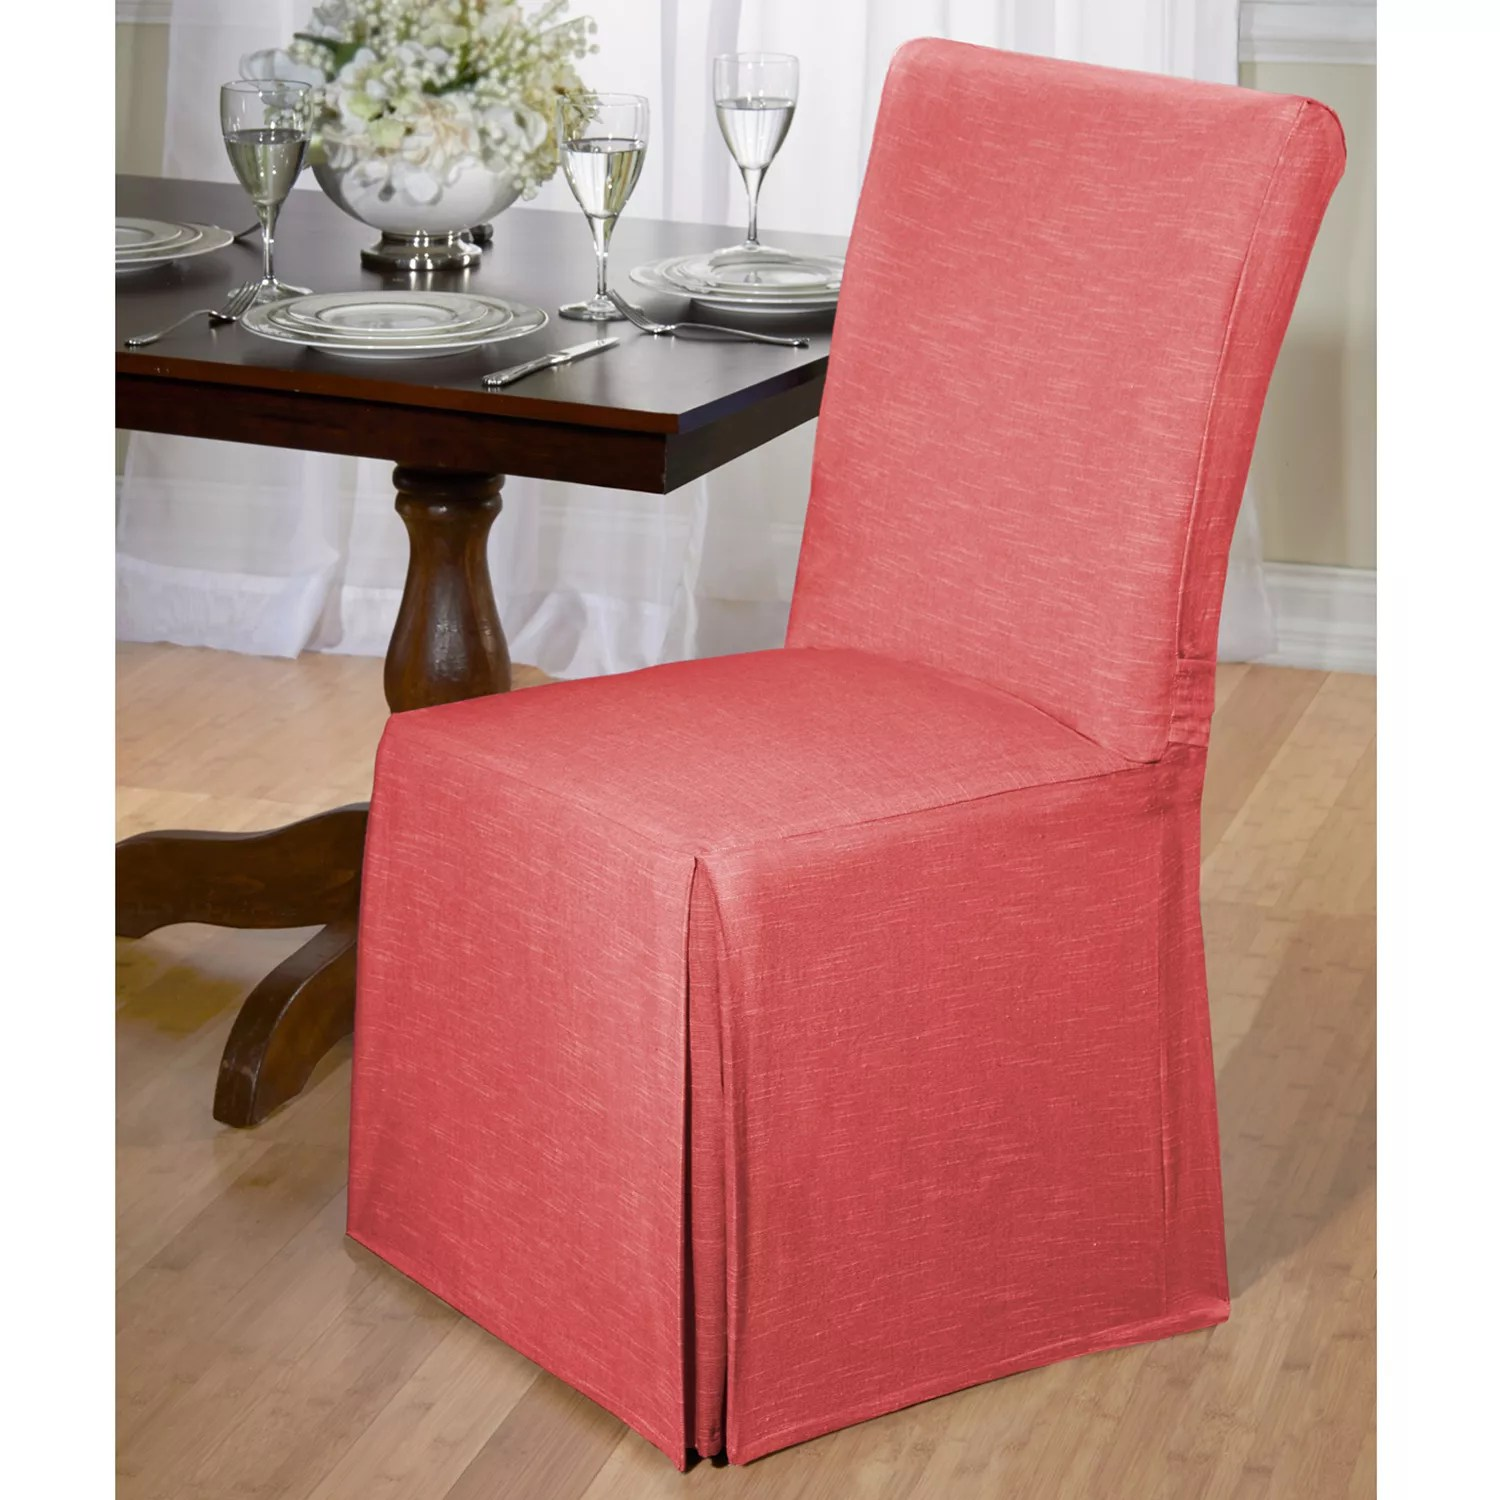 santa chair covers australia taupe slipcovers kohl s madison chambray dining room slipcover